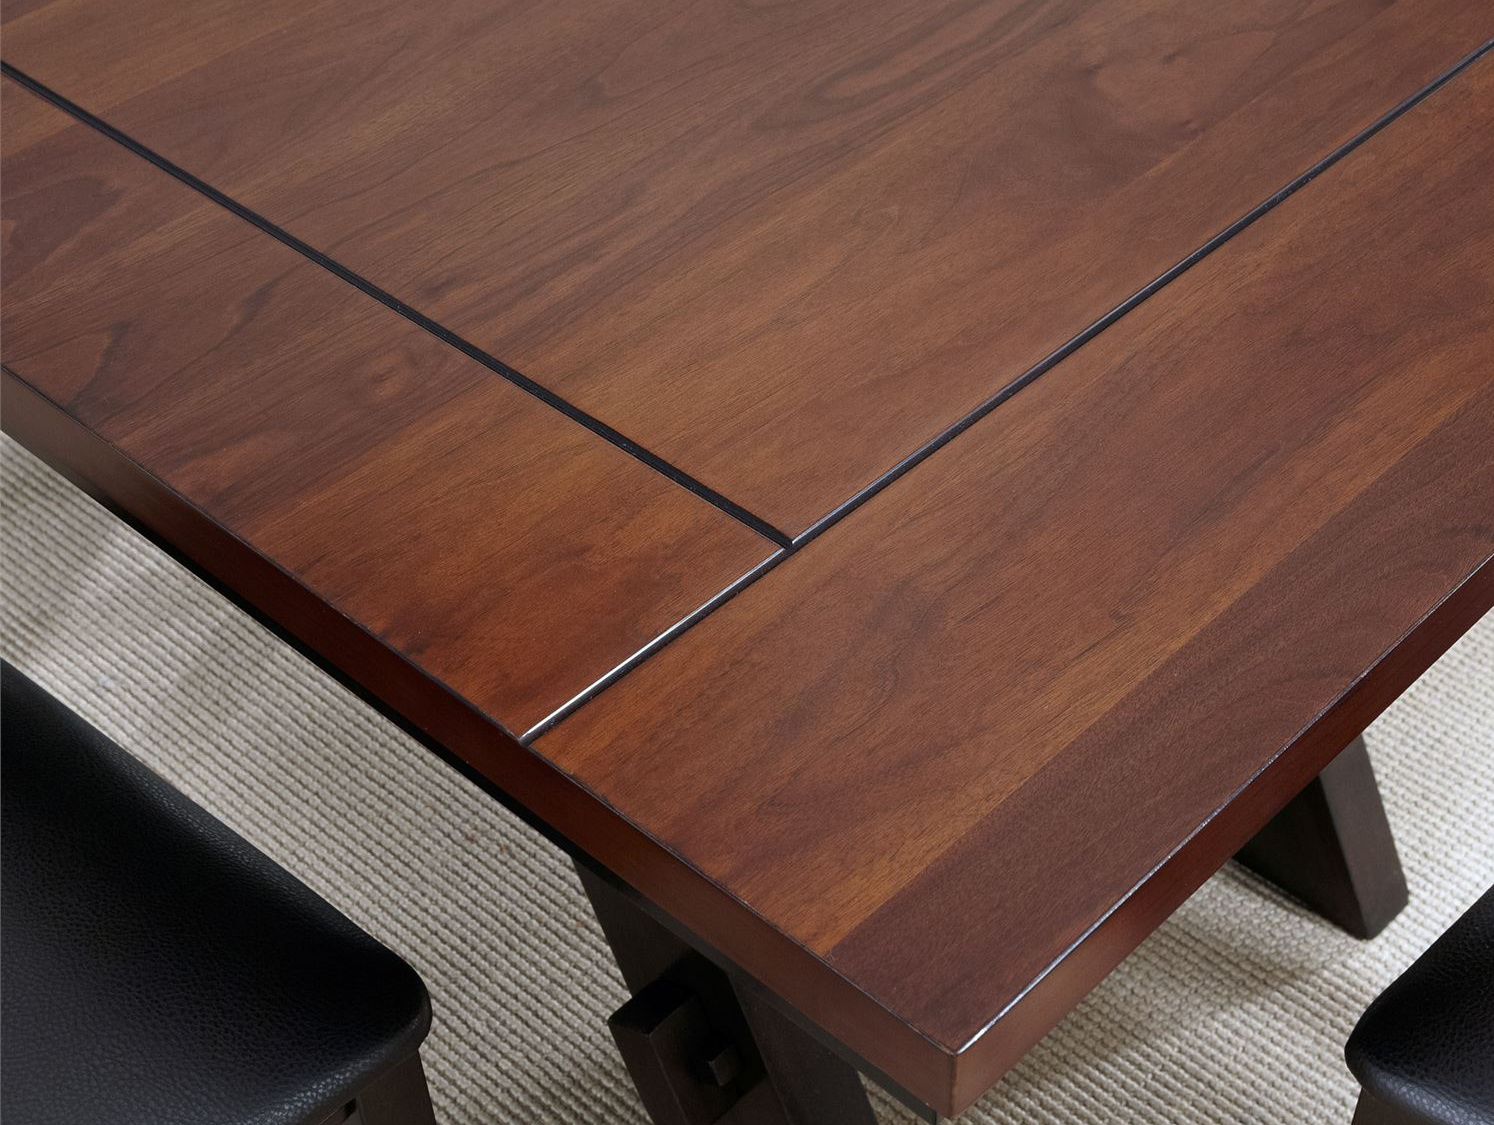 116 Table Top Detail